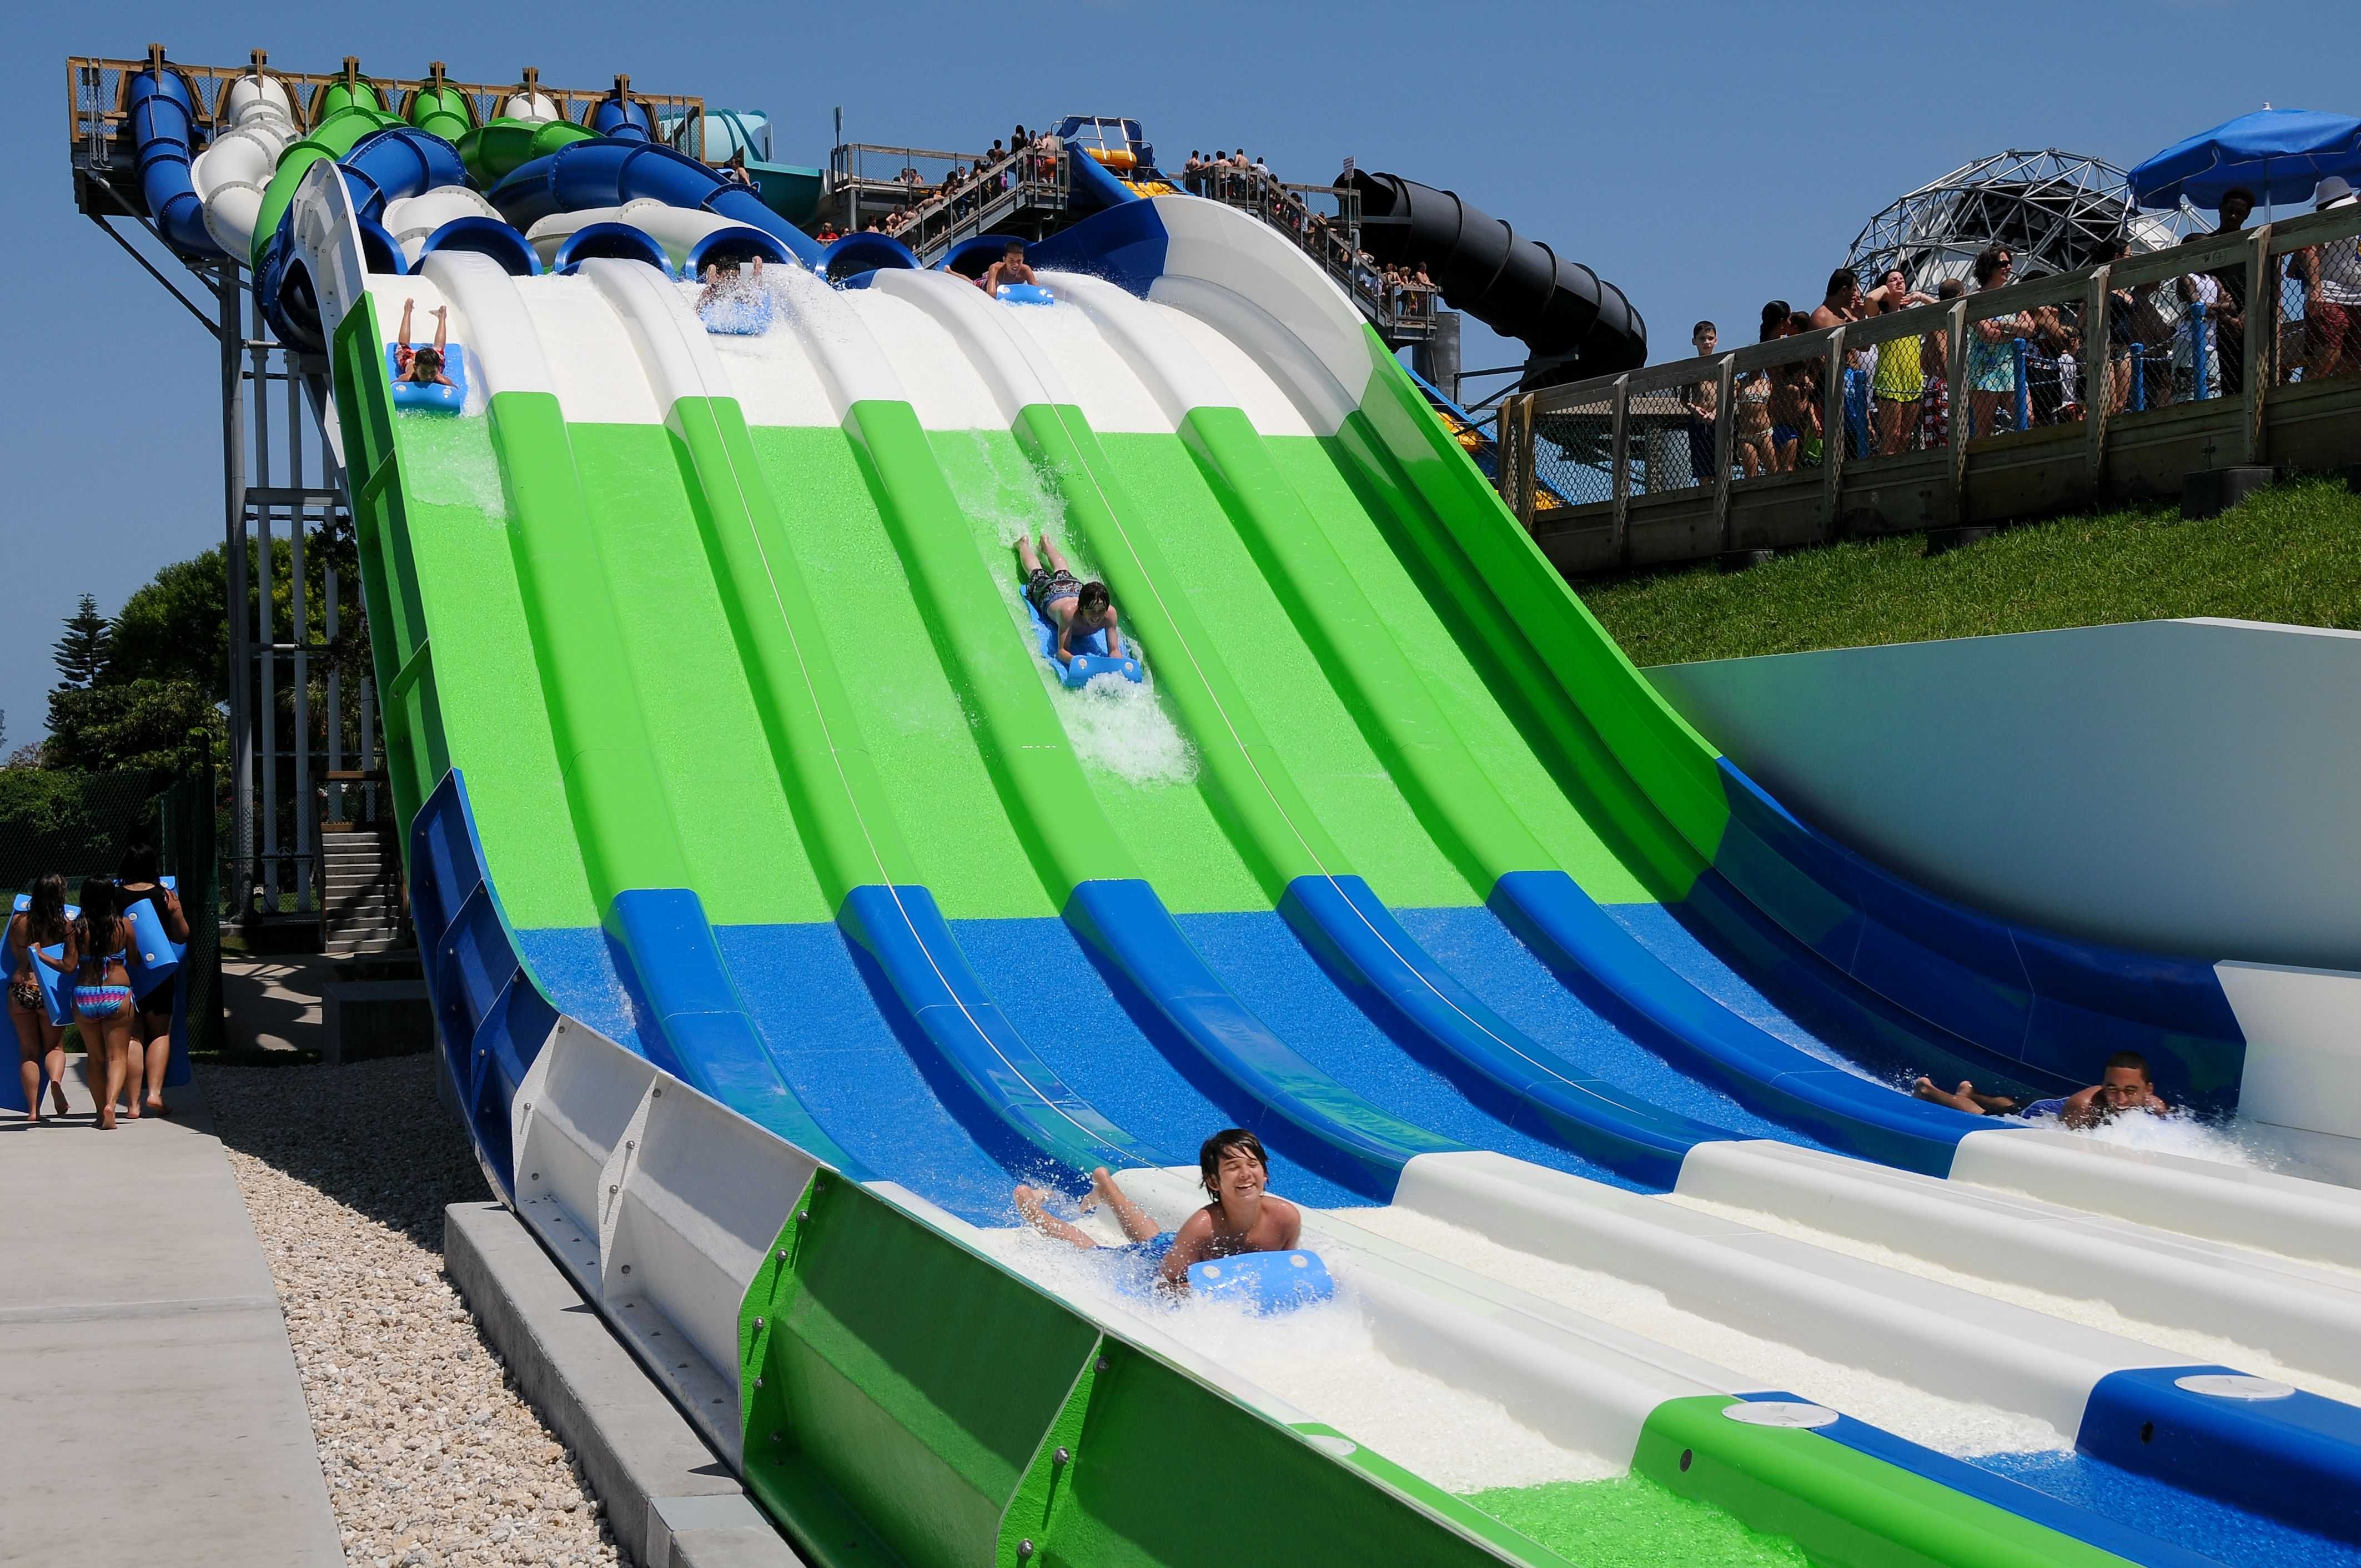 Rapids Water Park S Newest Attraction Racer Located In West Palm Beach Fl